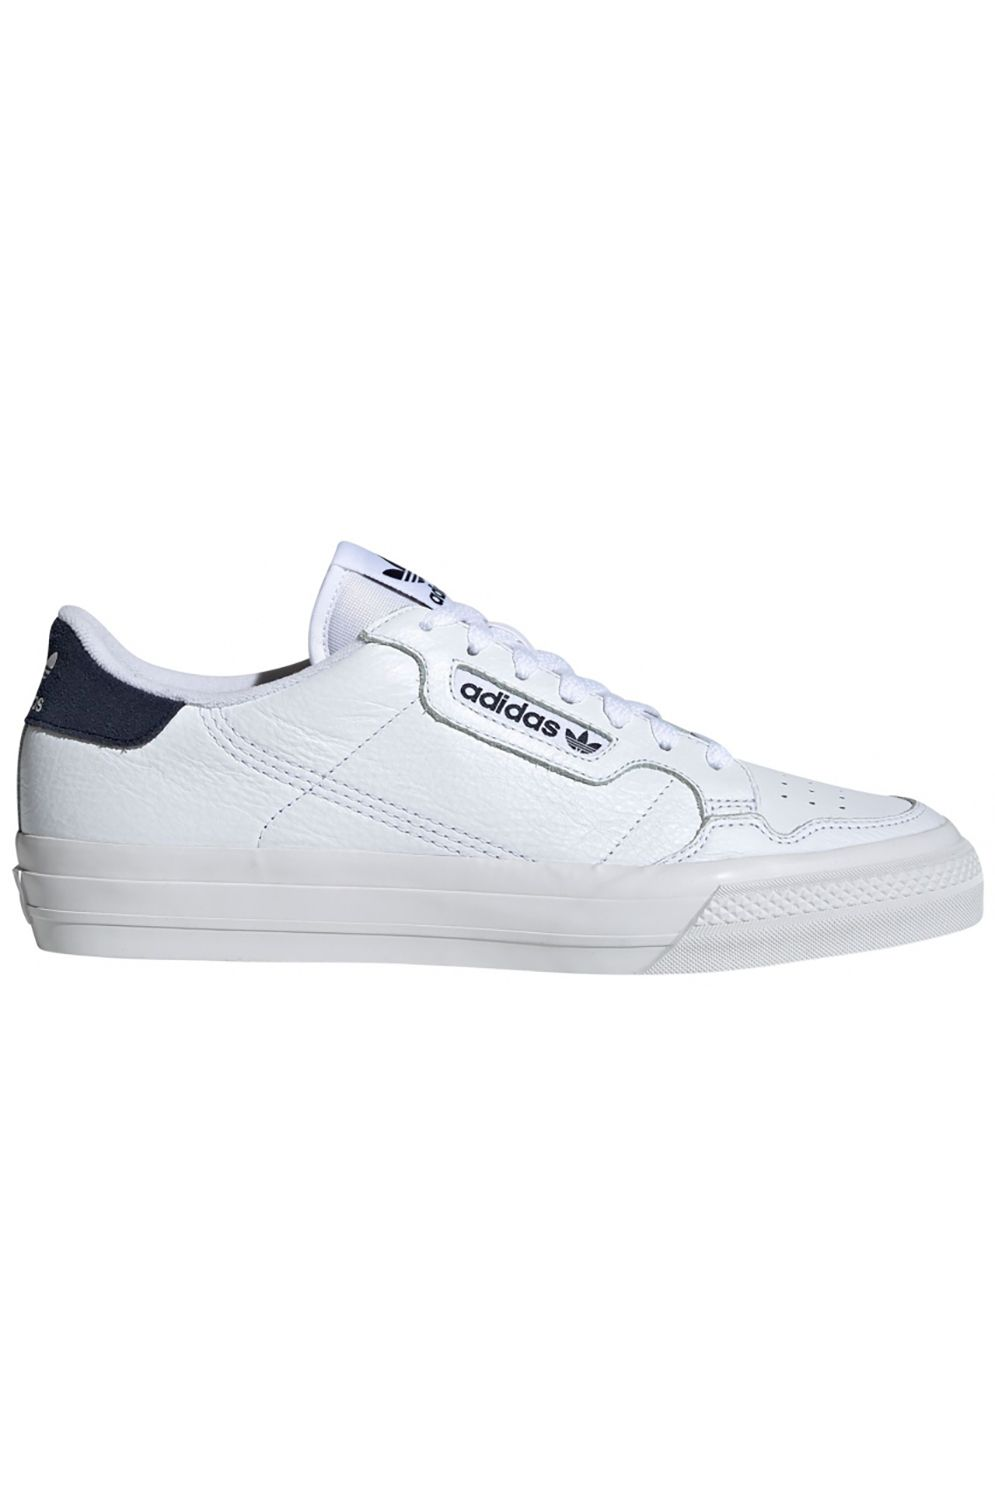 Adidas Shoes CONTINENTAL VULC Ftwr White/Ftwr White/Collegiate Navy